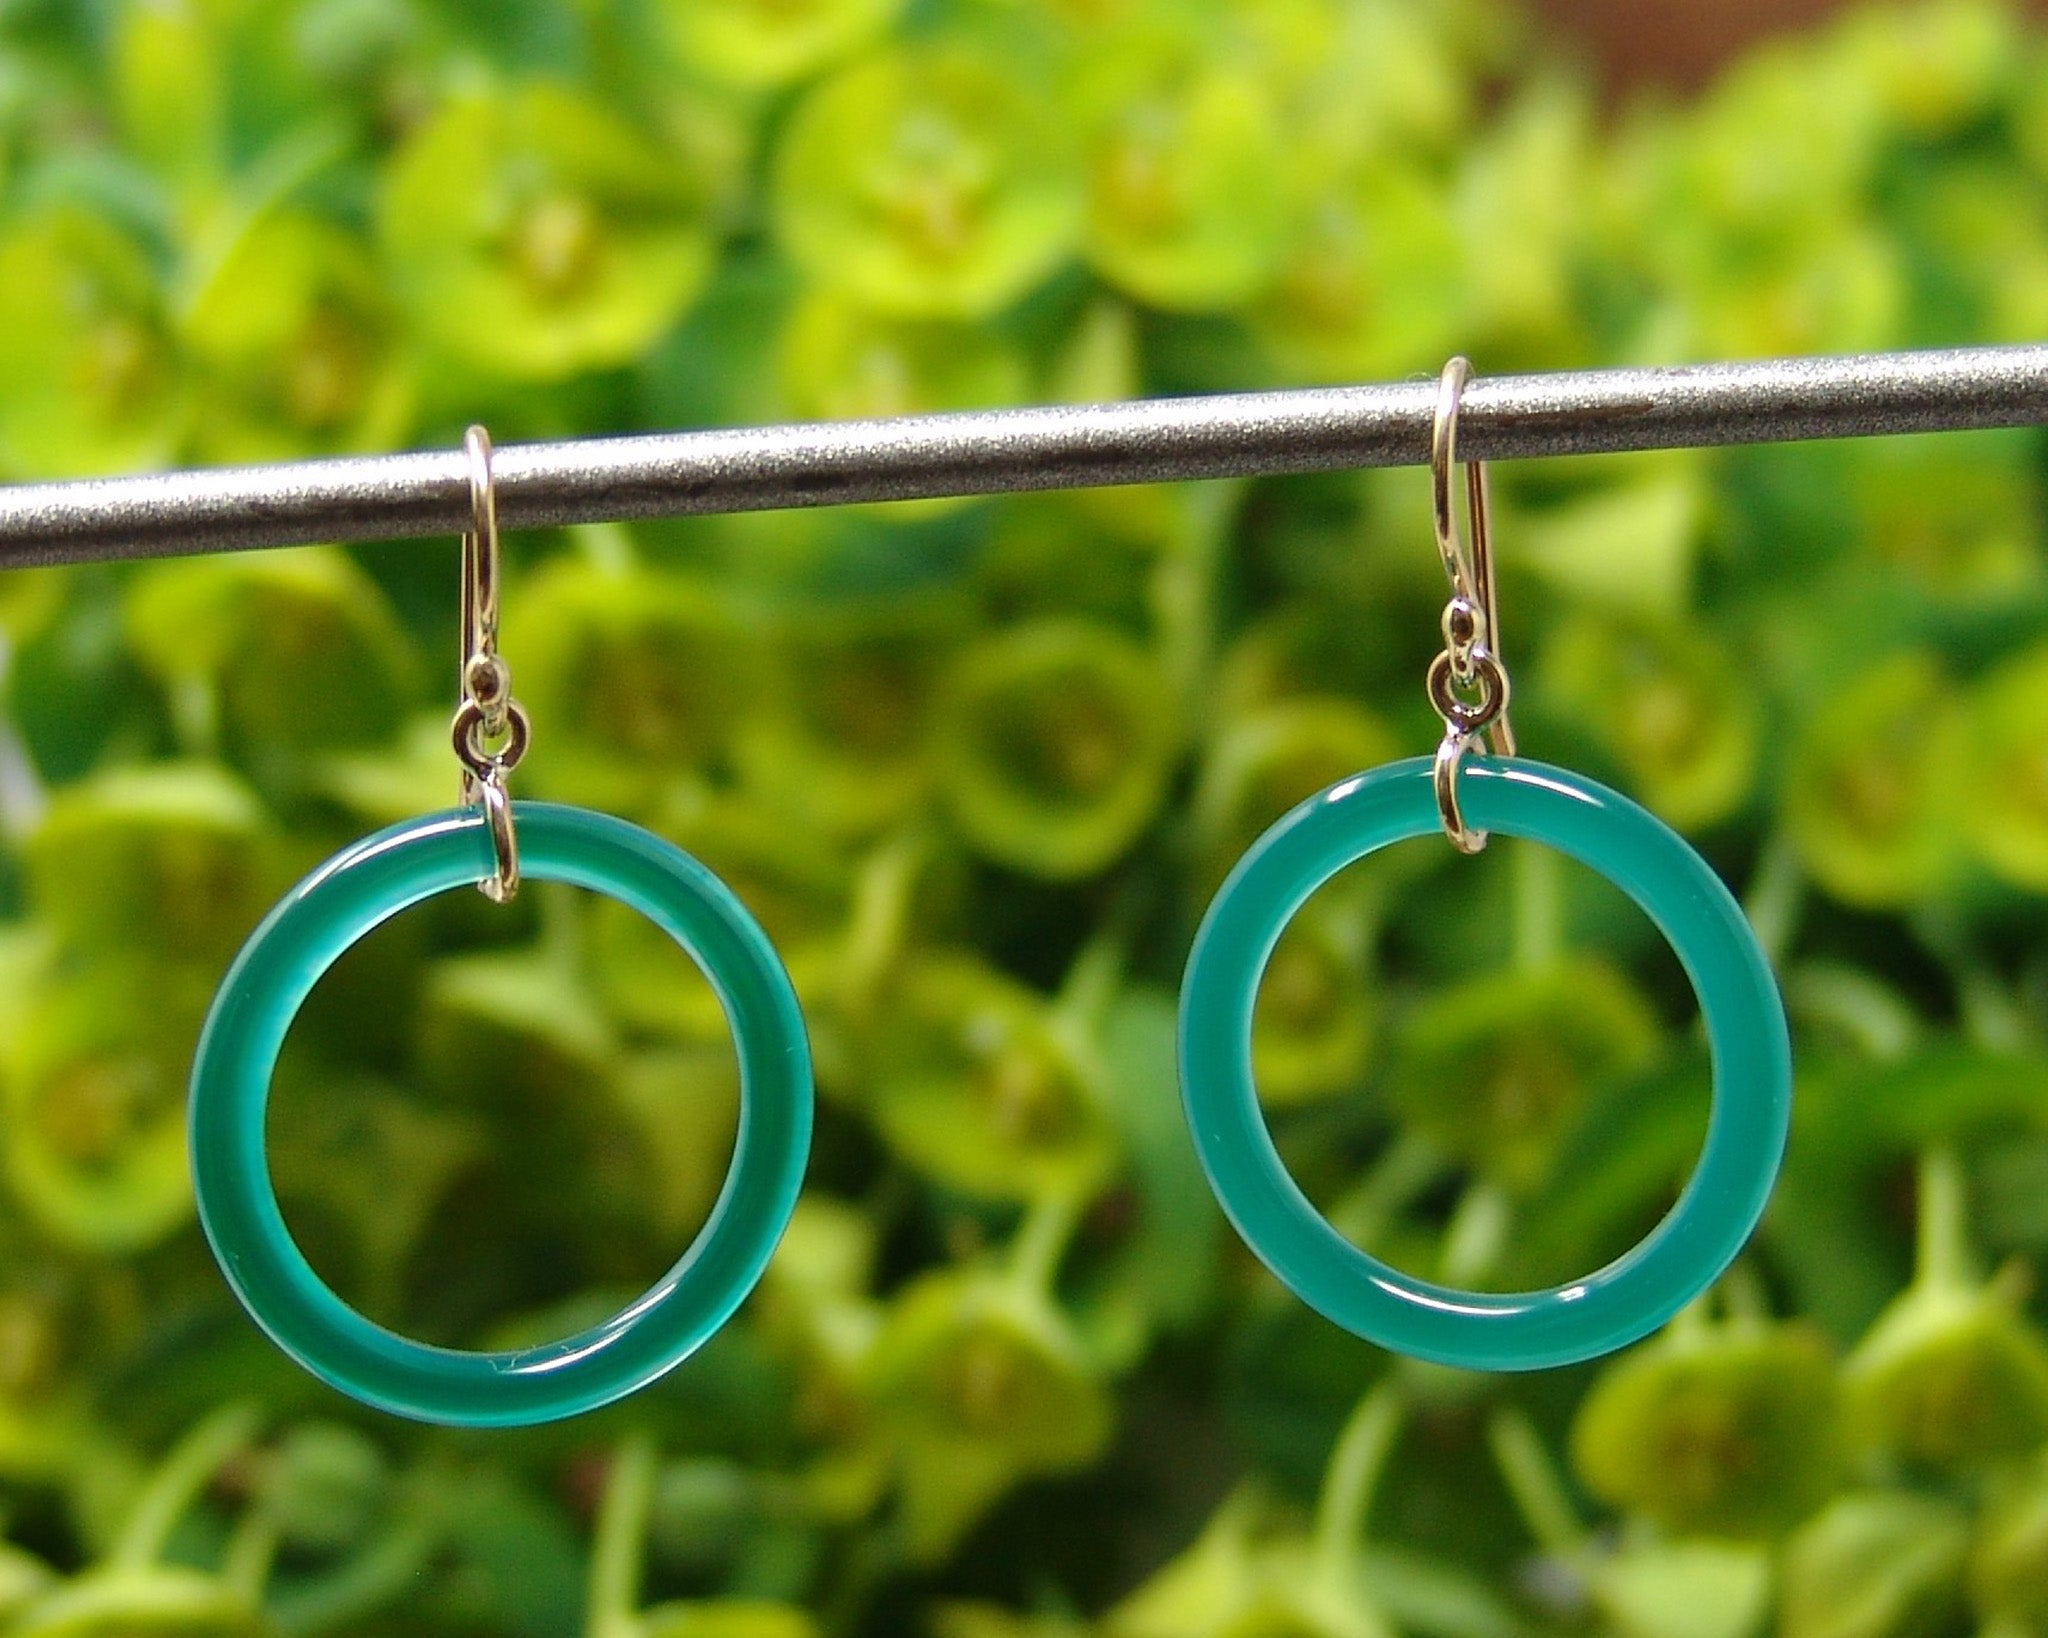 Green Agate Ring Earrings